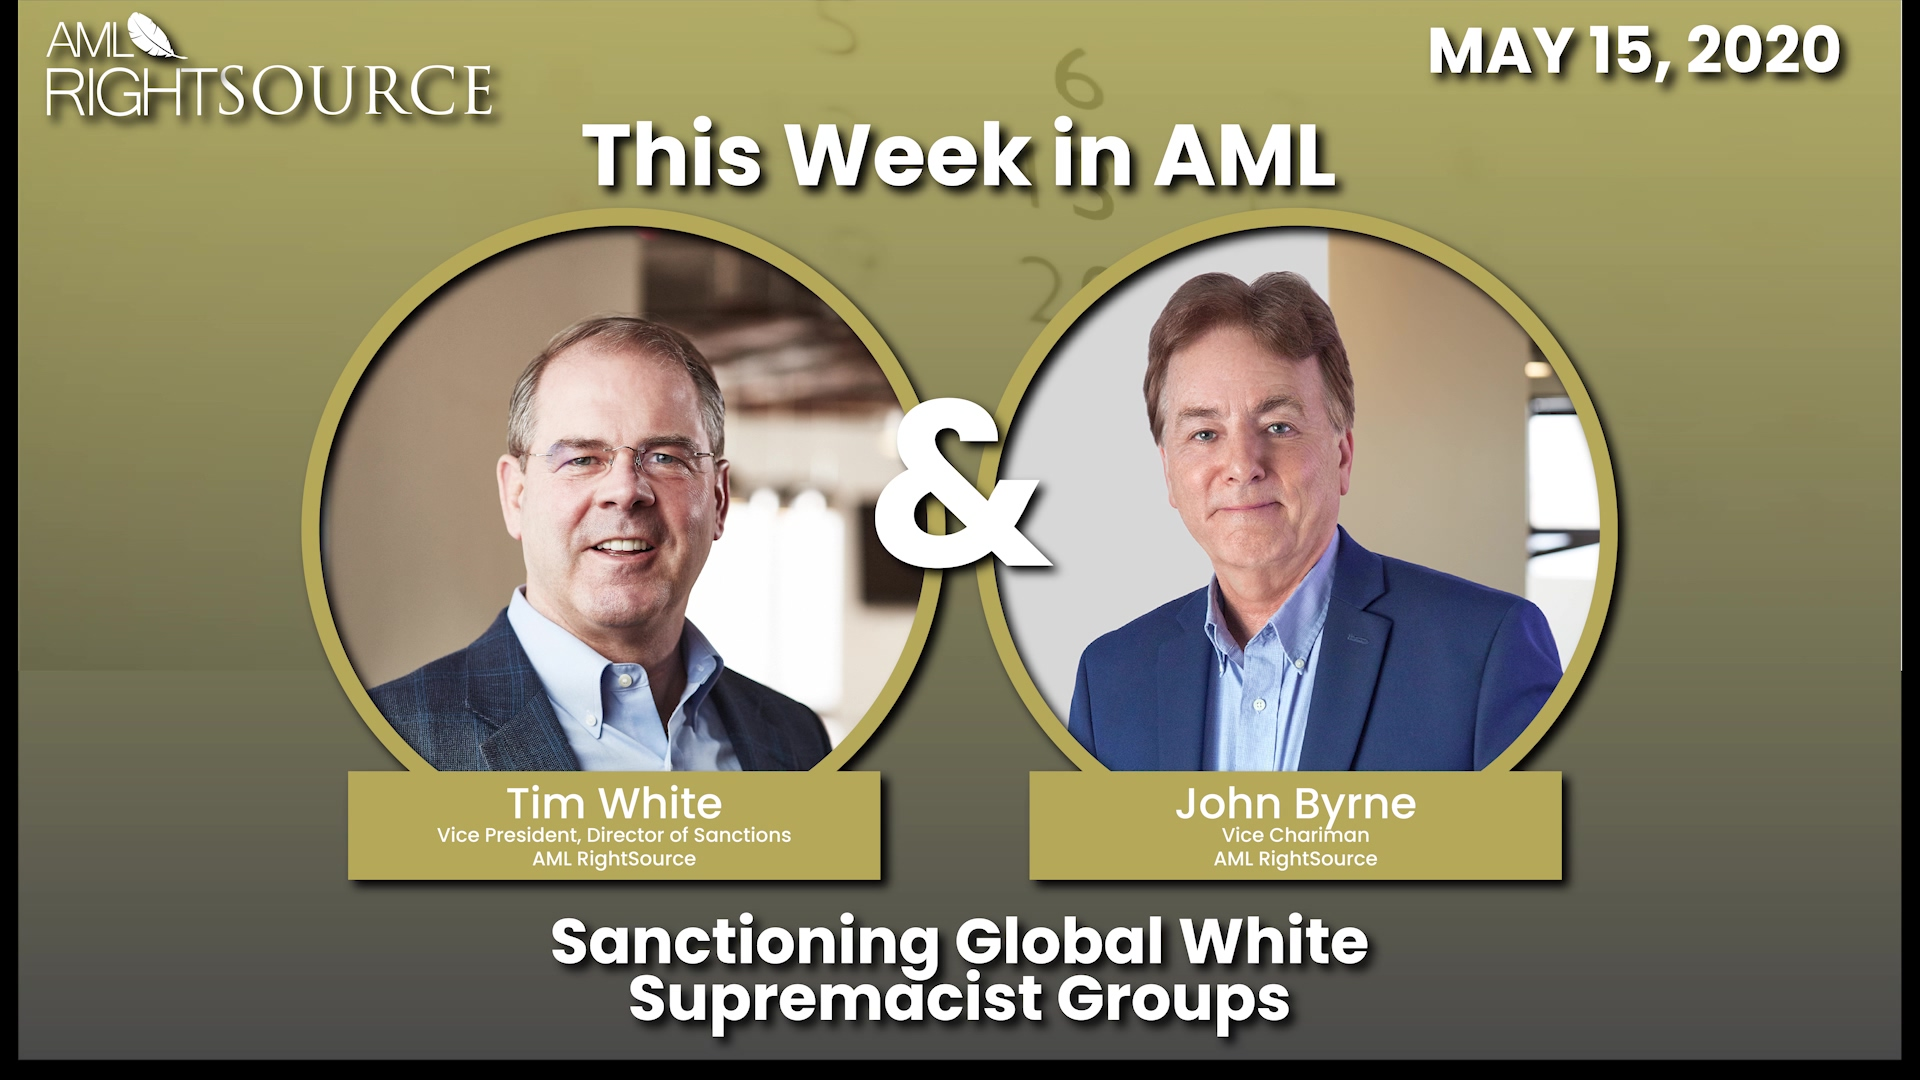 This Week in AML May 15 2020